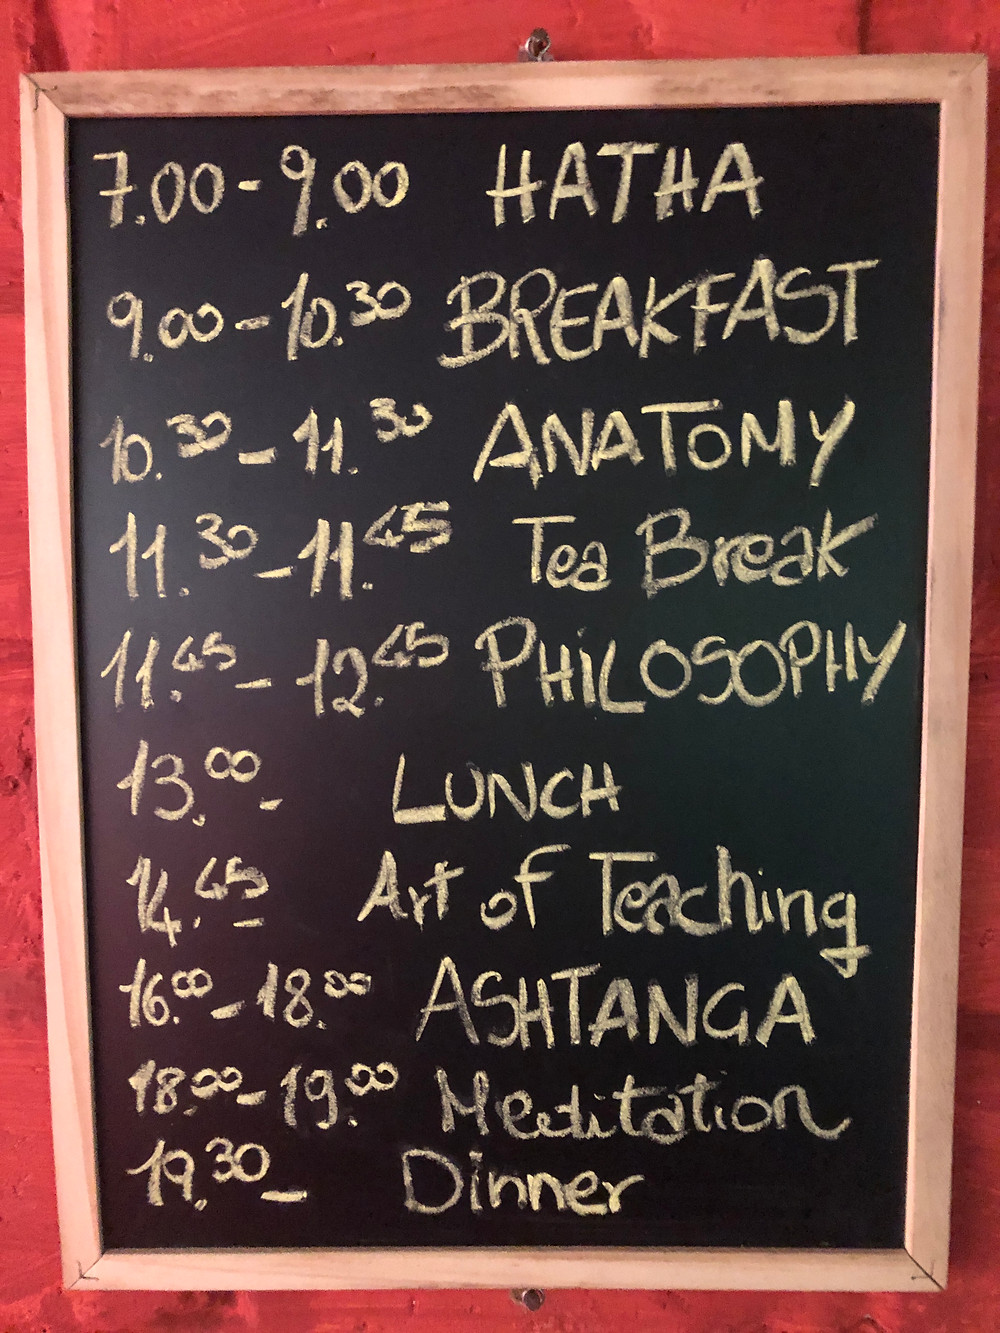 Yoga School timetable